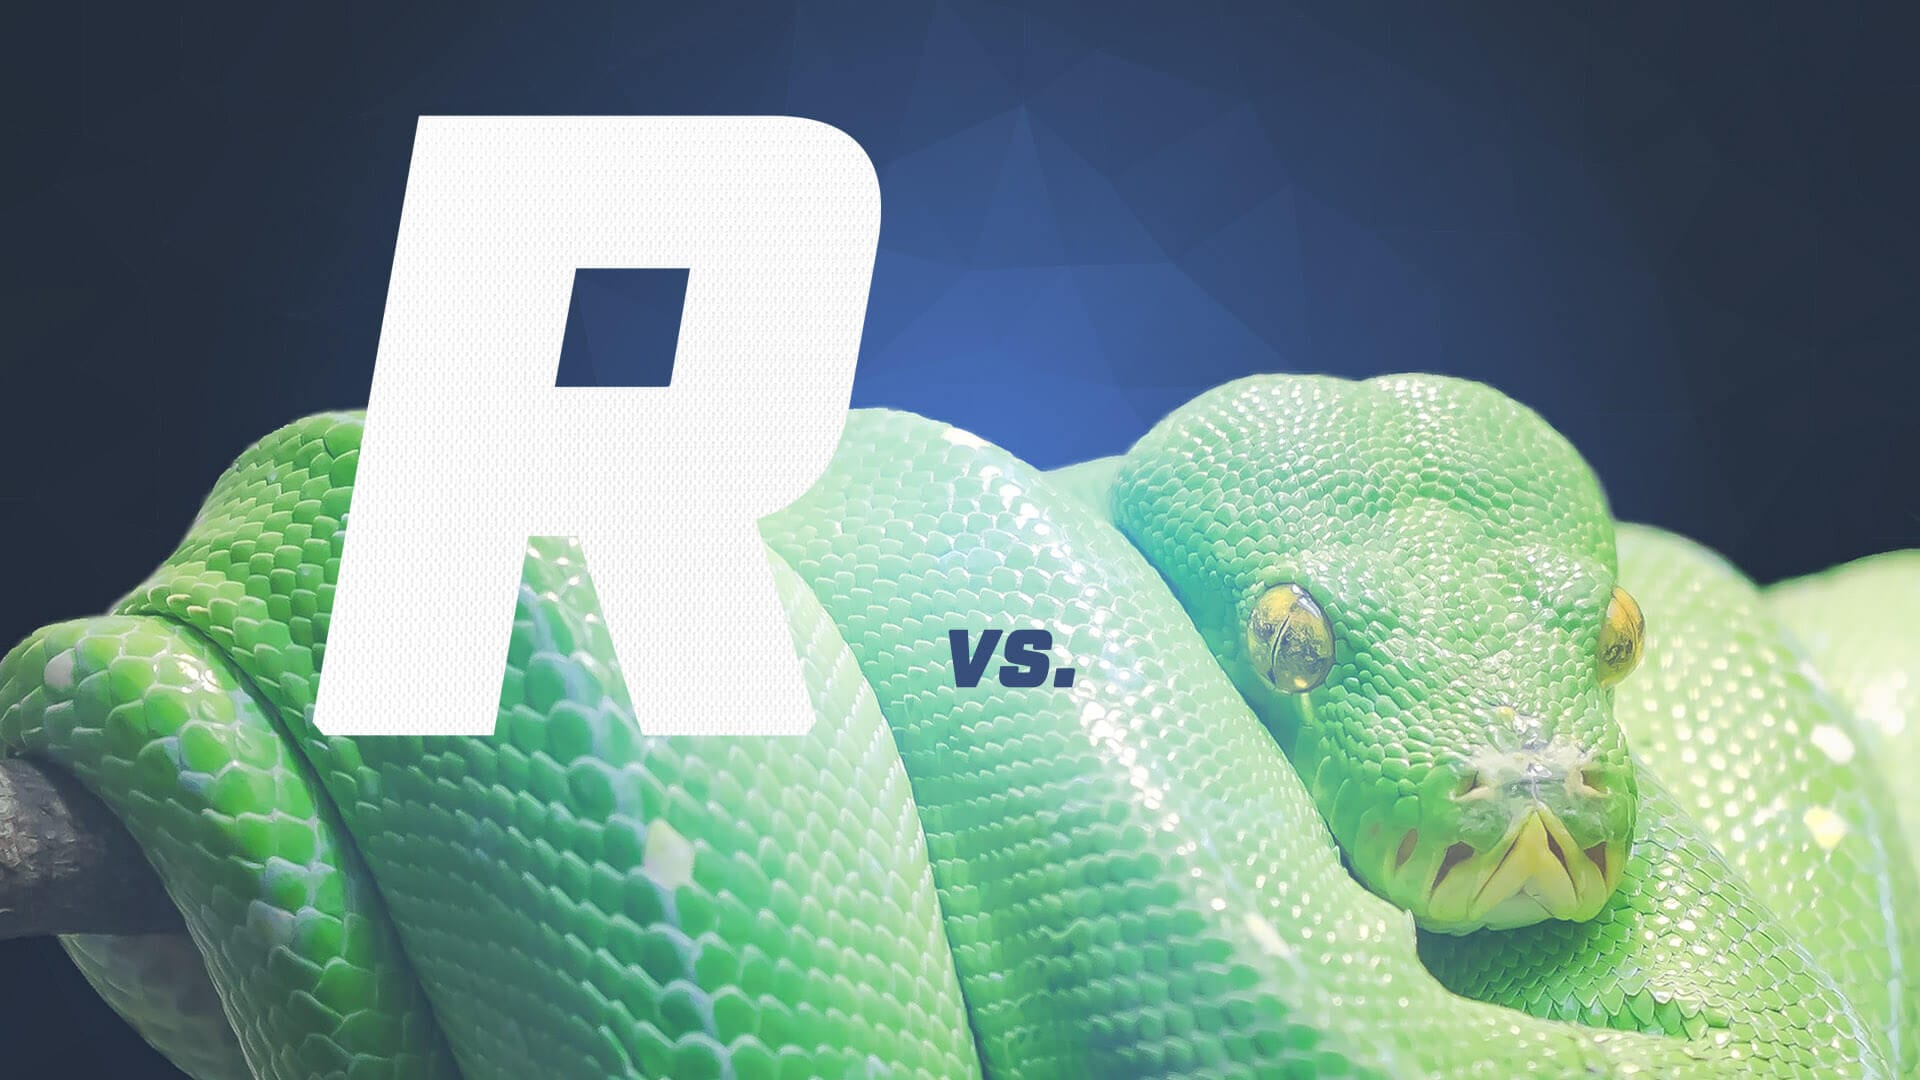 python-vs-r-data-science